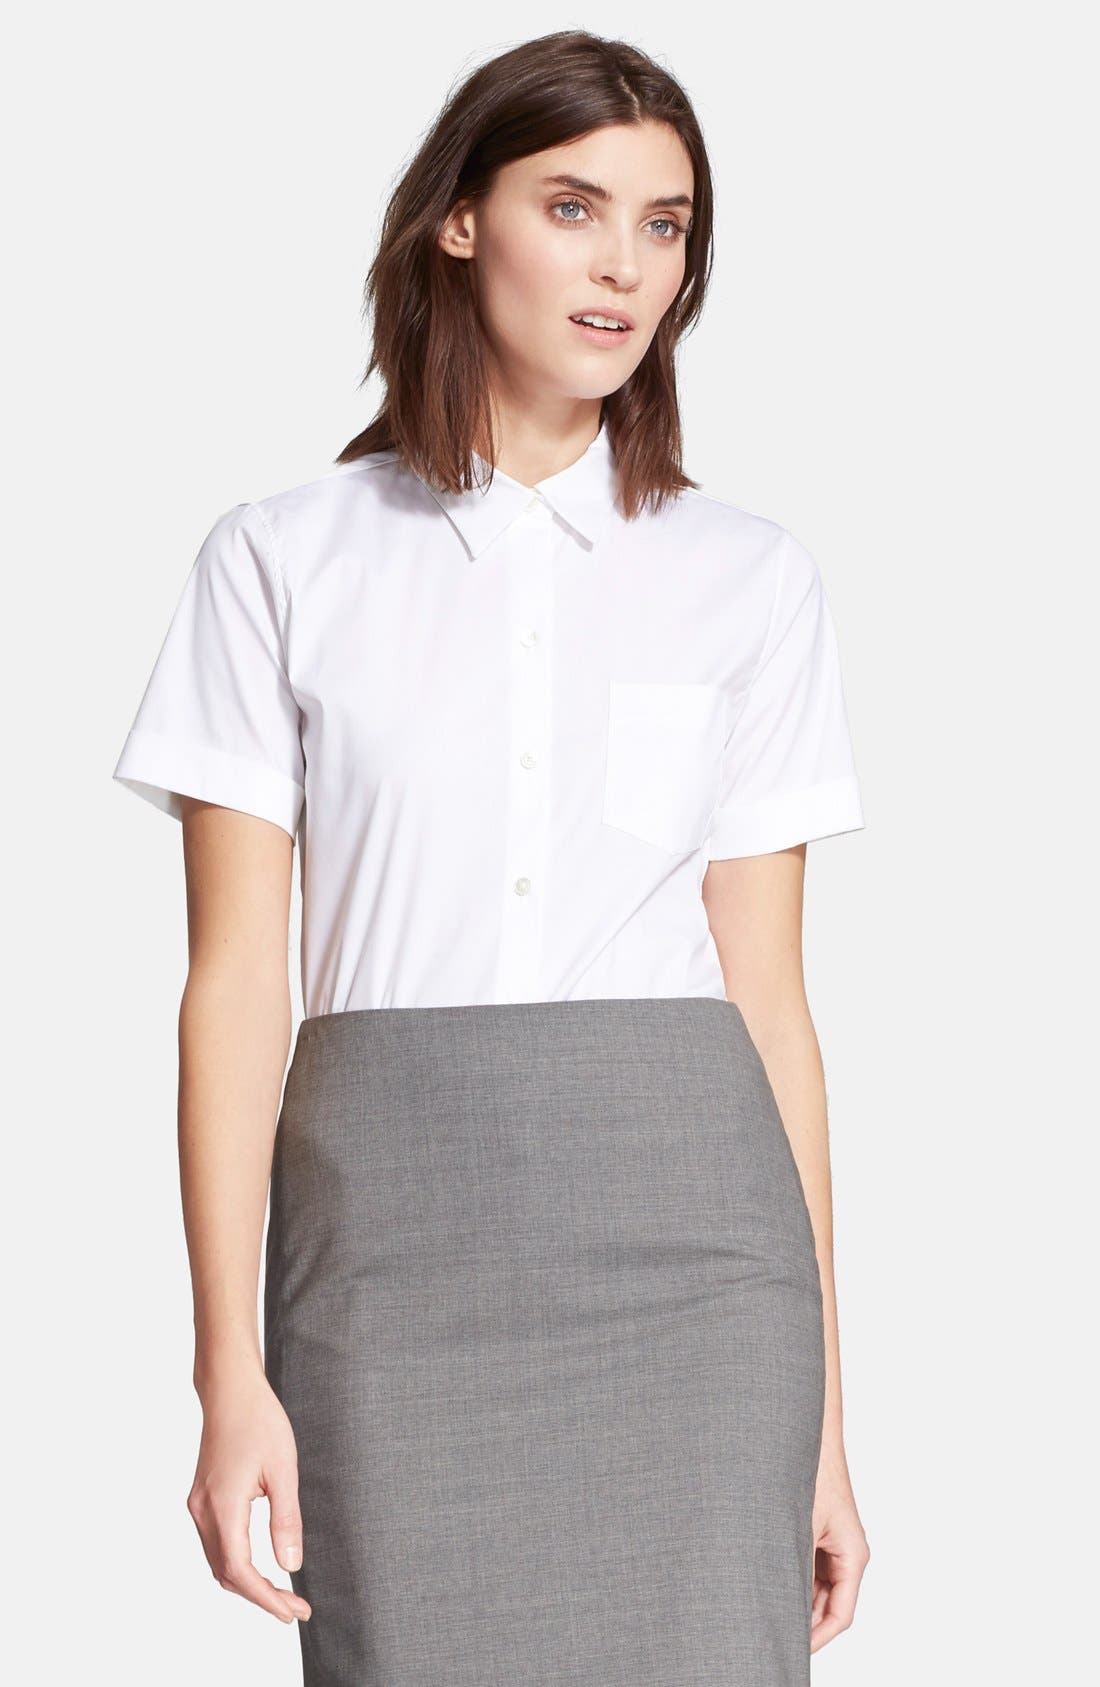 Alternate Image 1 Selected - Theory 'Uniform' Short Sleeve Blouse